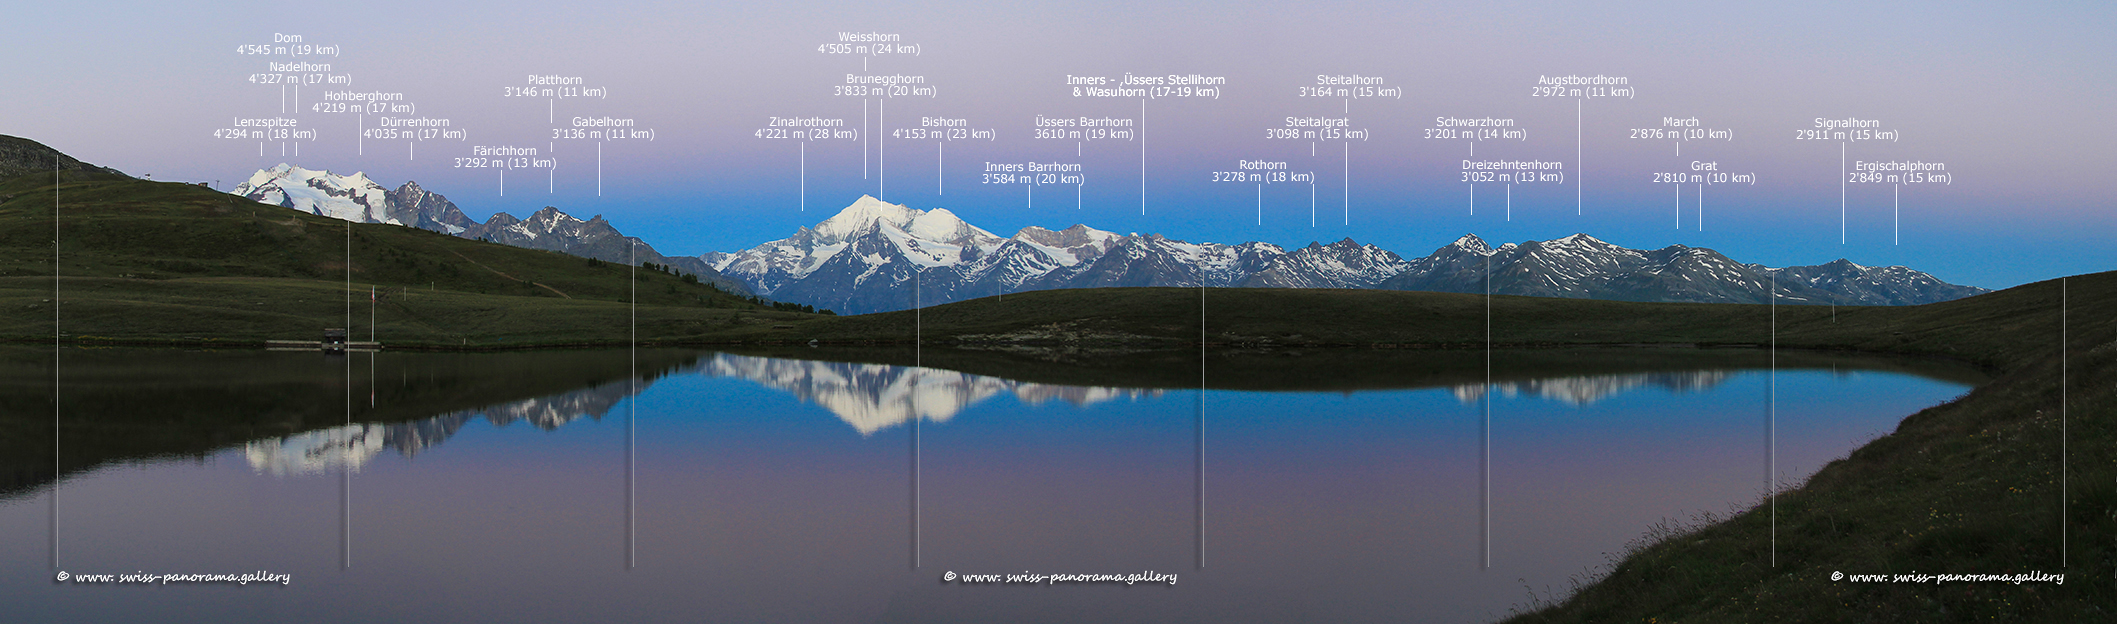 Panorama Gibidumsee,  a morning scenery before sunrise, the Mischabel Group and the Weisshorn reflecting in the lake Gibidum  at twilight.